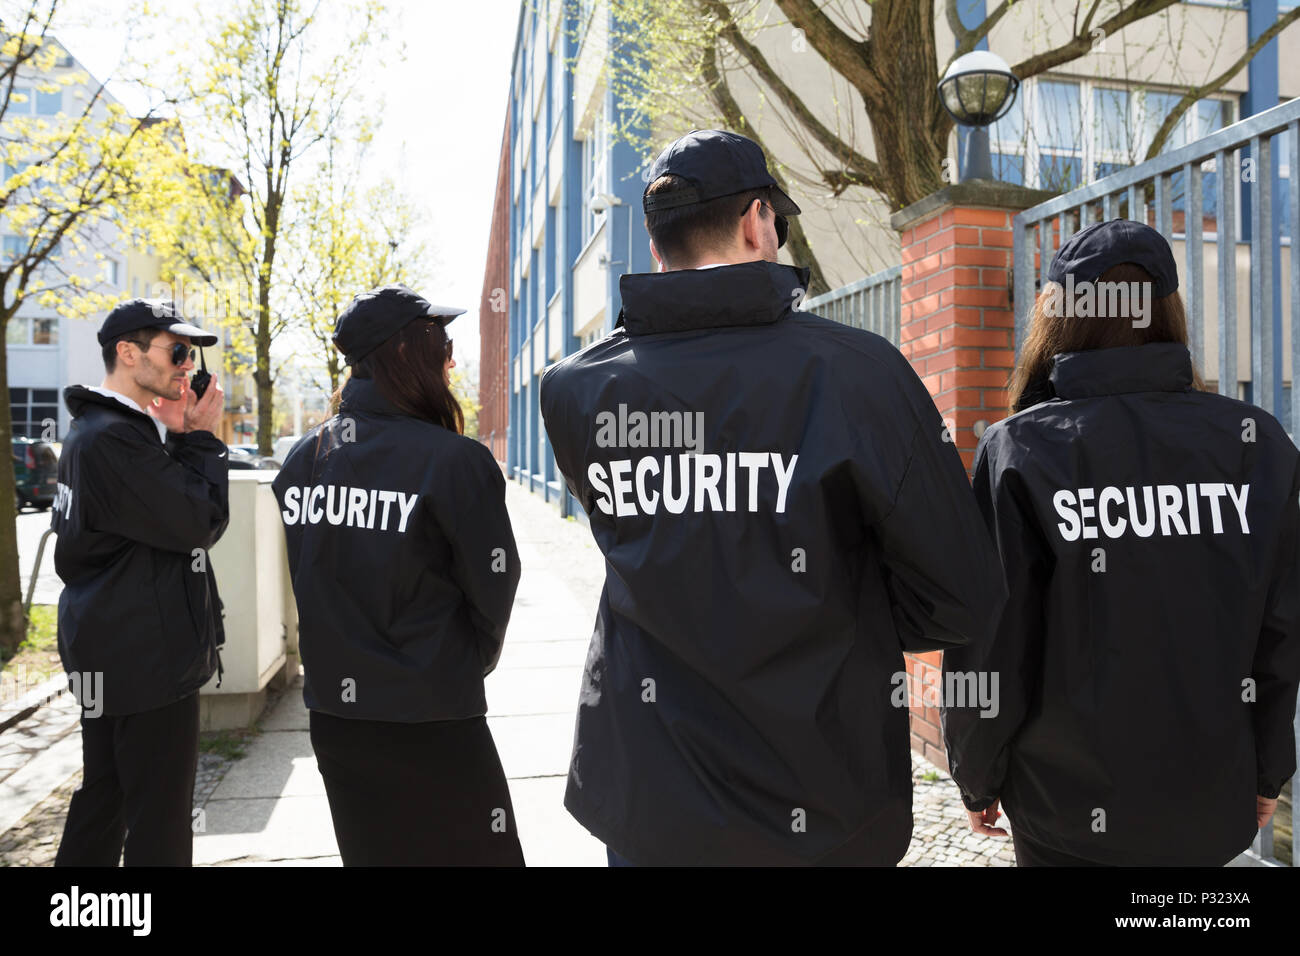 Rear View Of Security Guards In Black Uniform Standing Outside Building - Stock Image